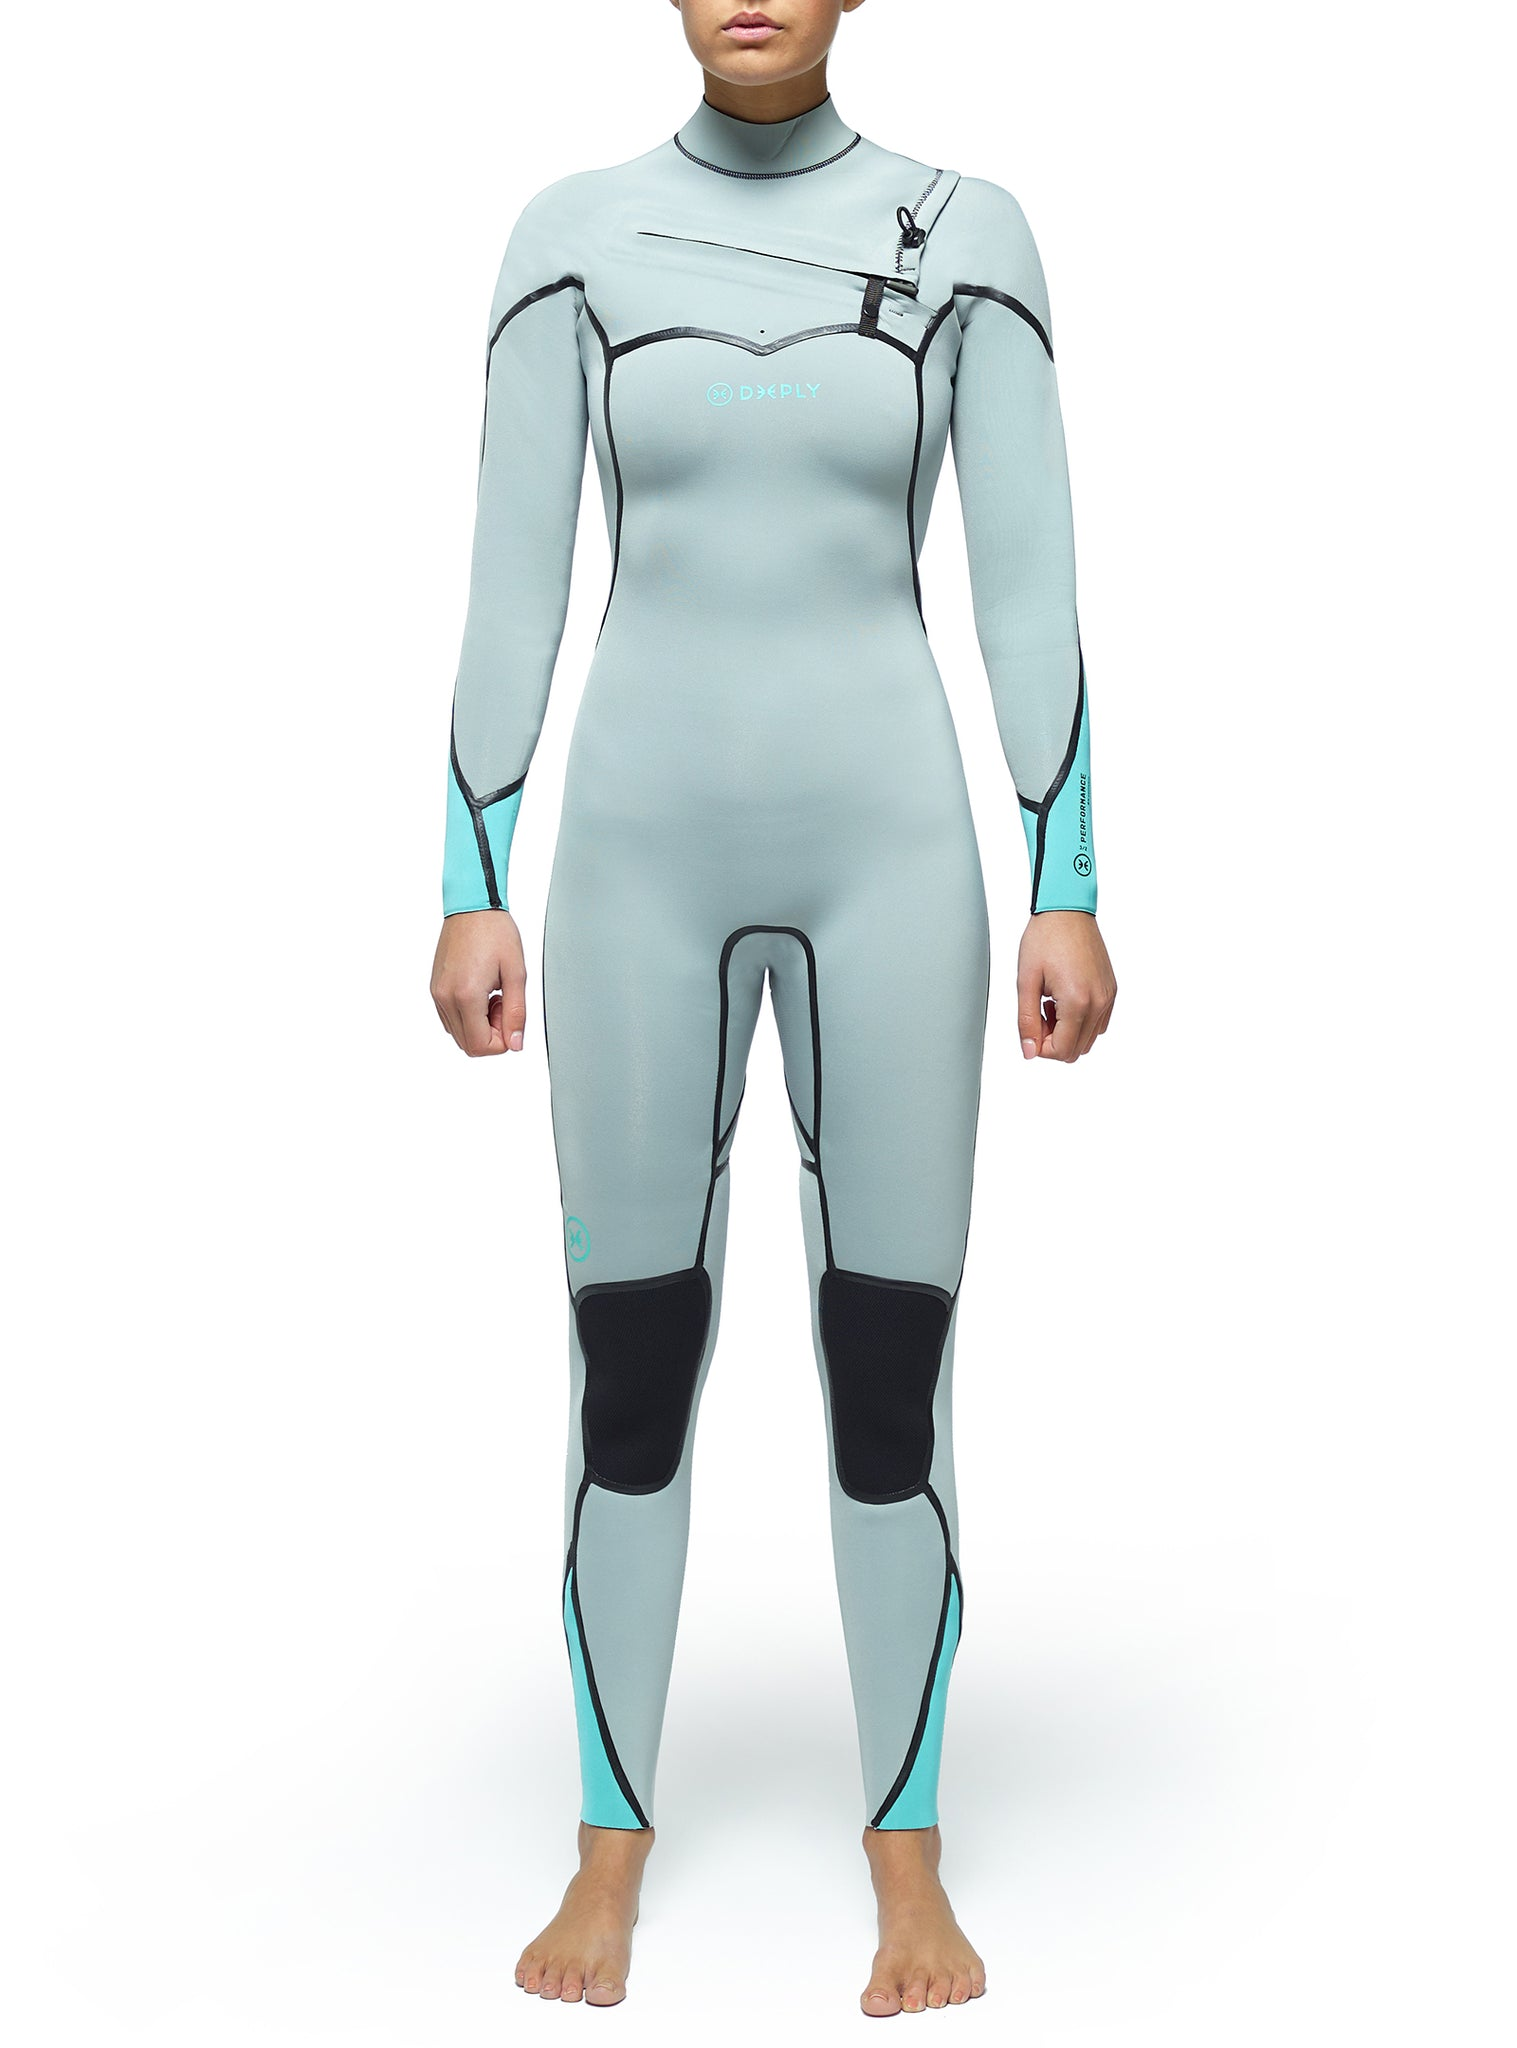 Wetsuit Woman Performance 3/2 Chest Zip Light Grey